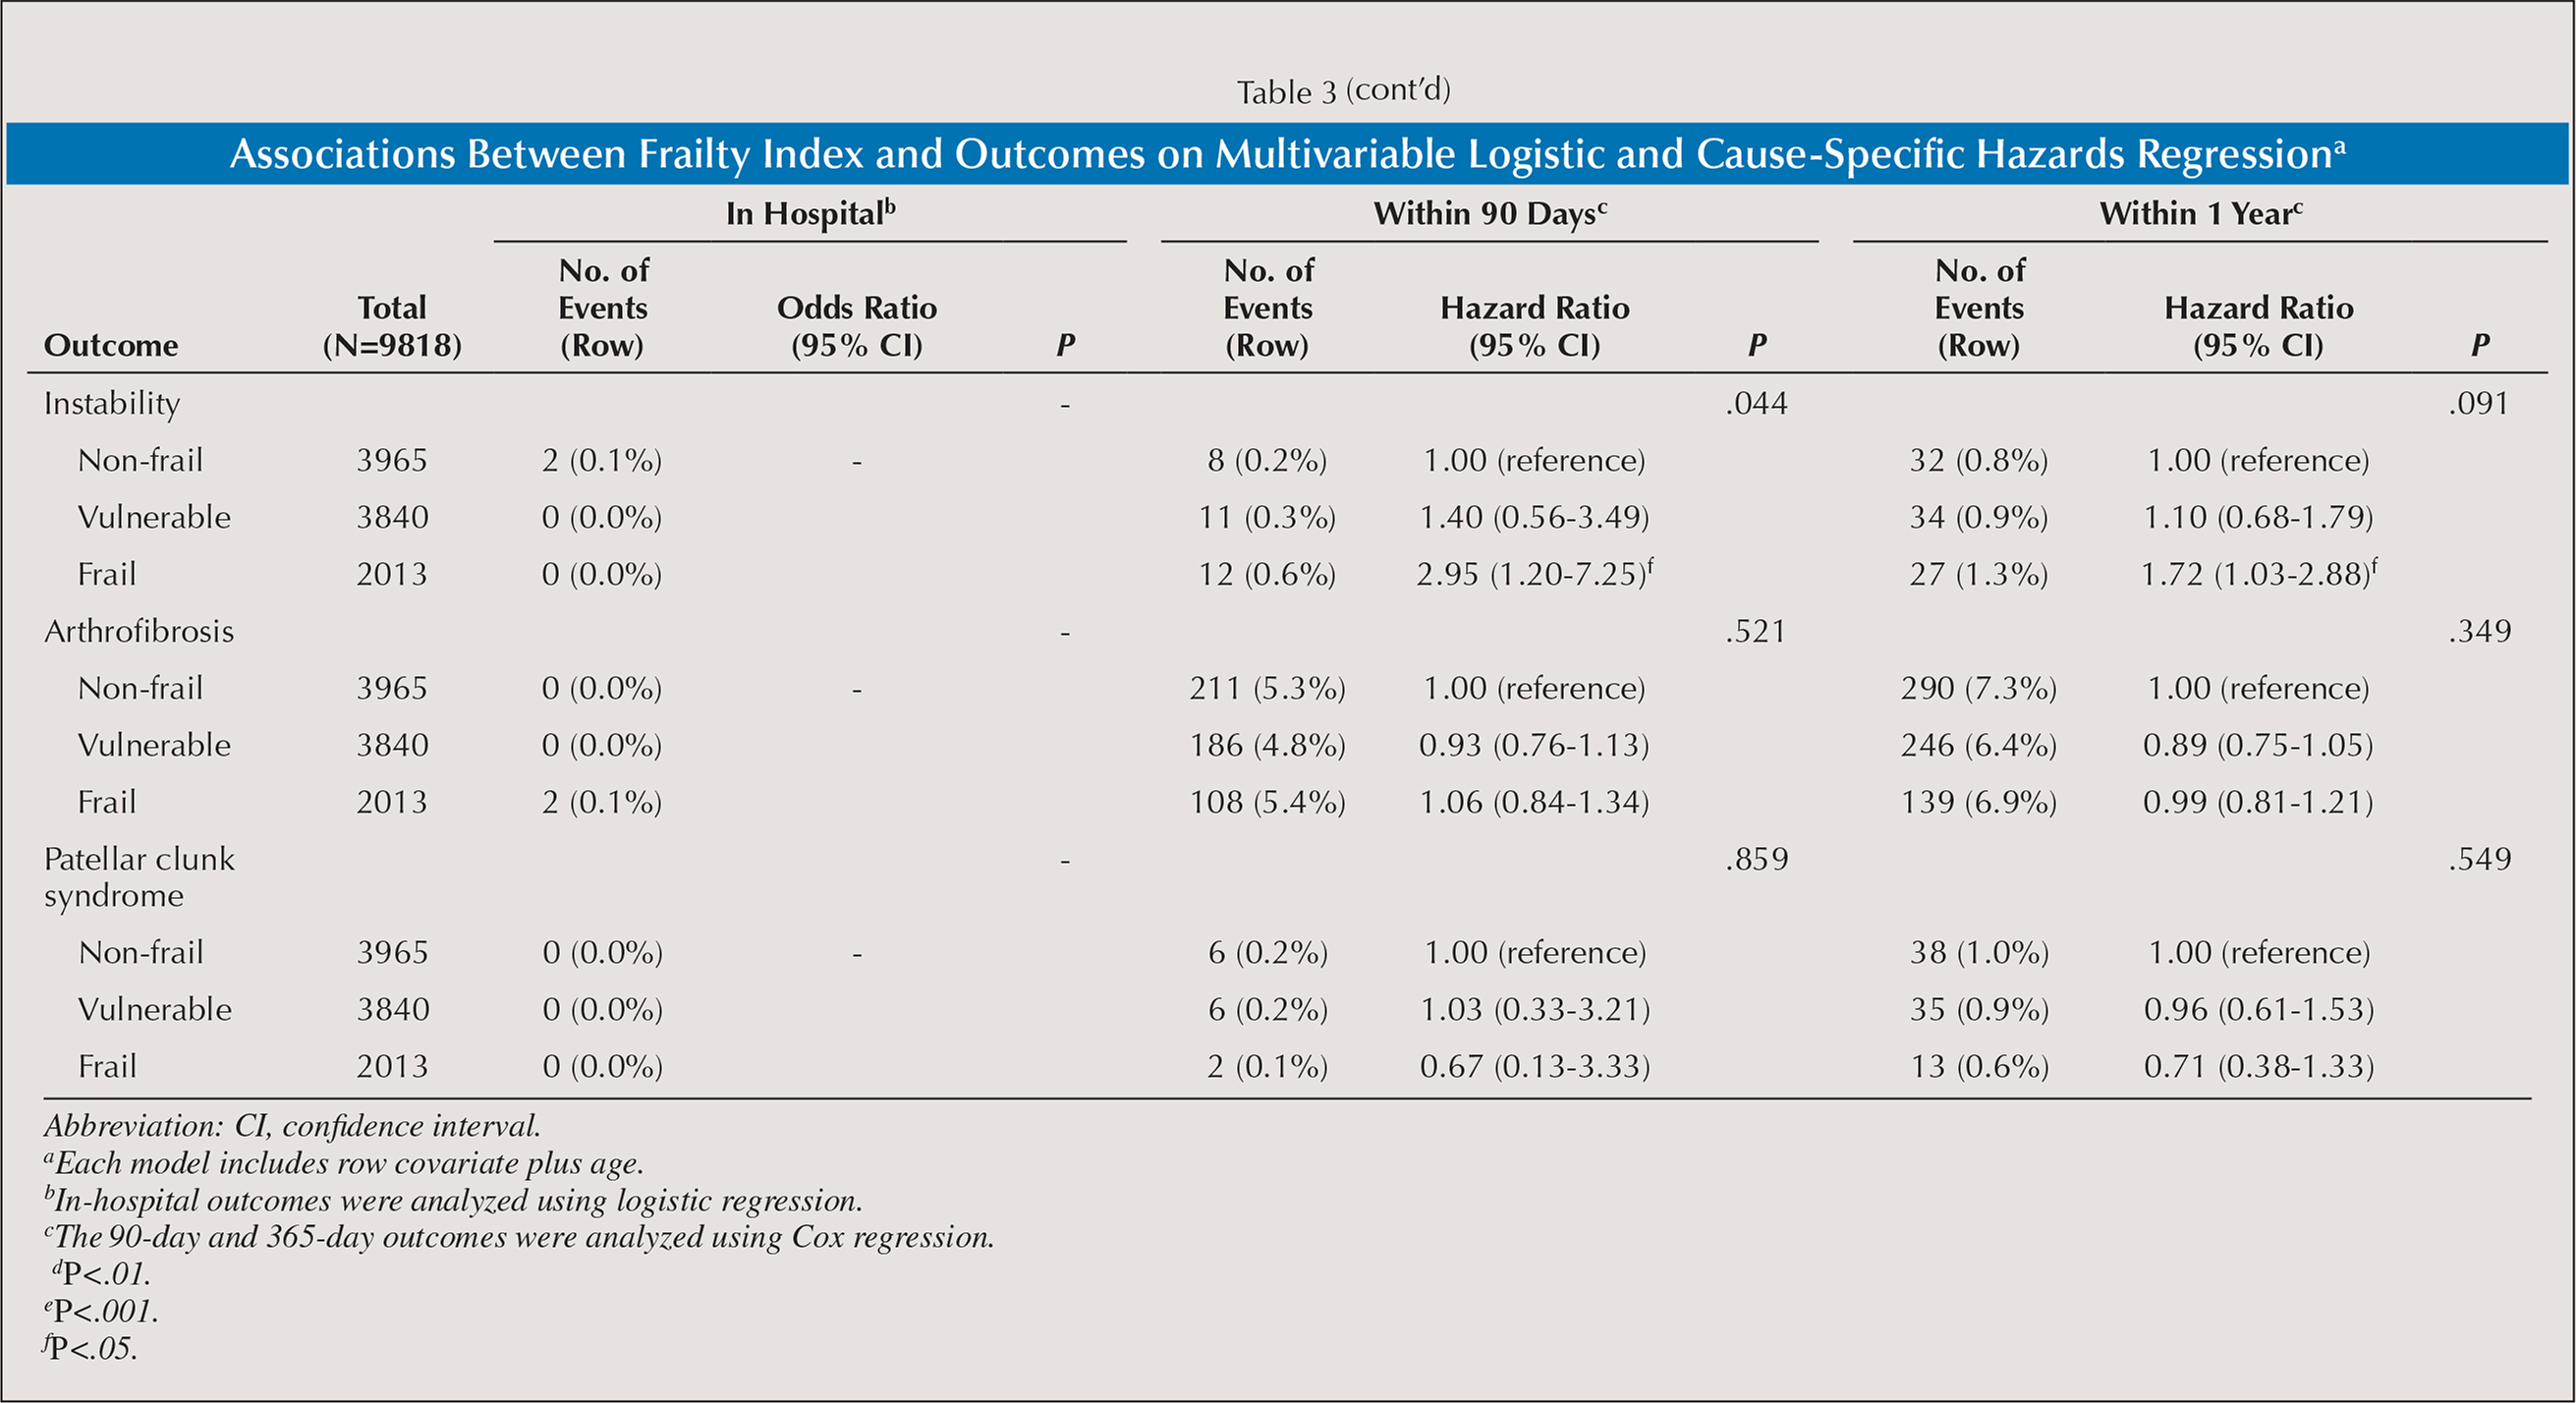 Associations Between Frailty Index and Outcomes on Multivariable Logistic and Cause-Specific Hazards Regressiona